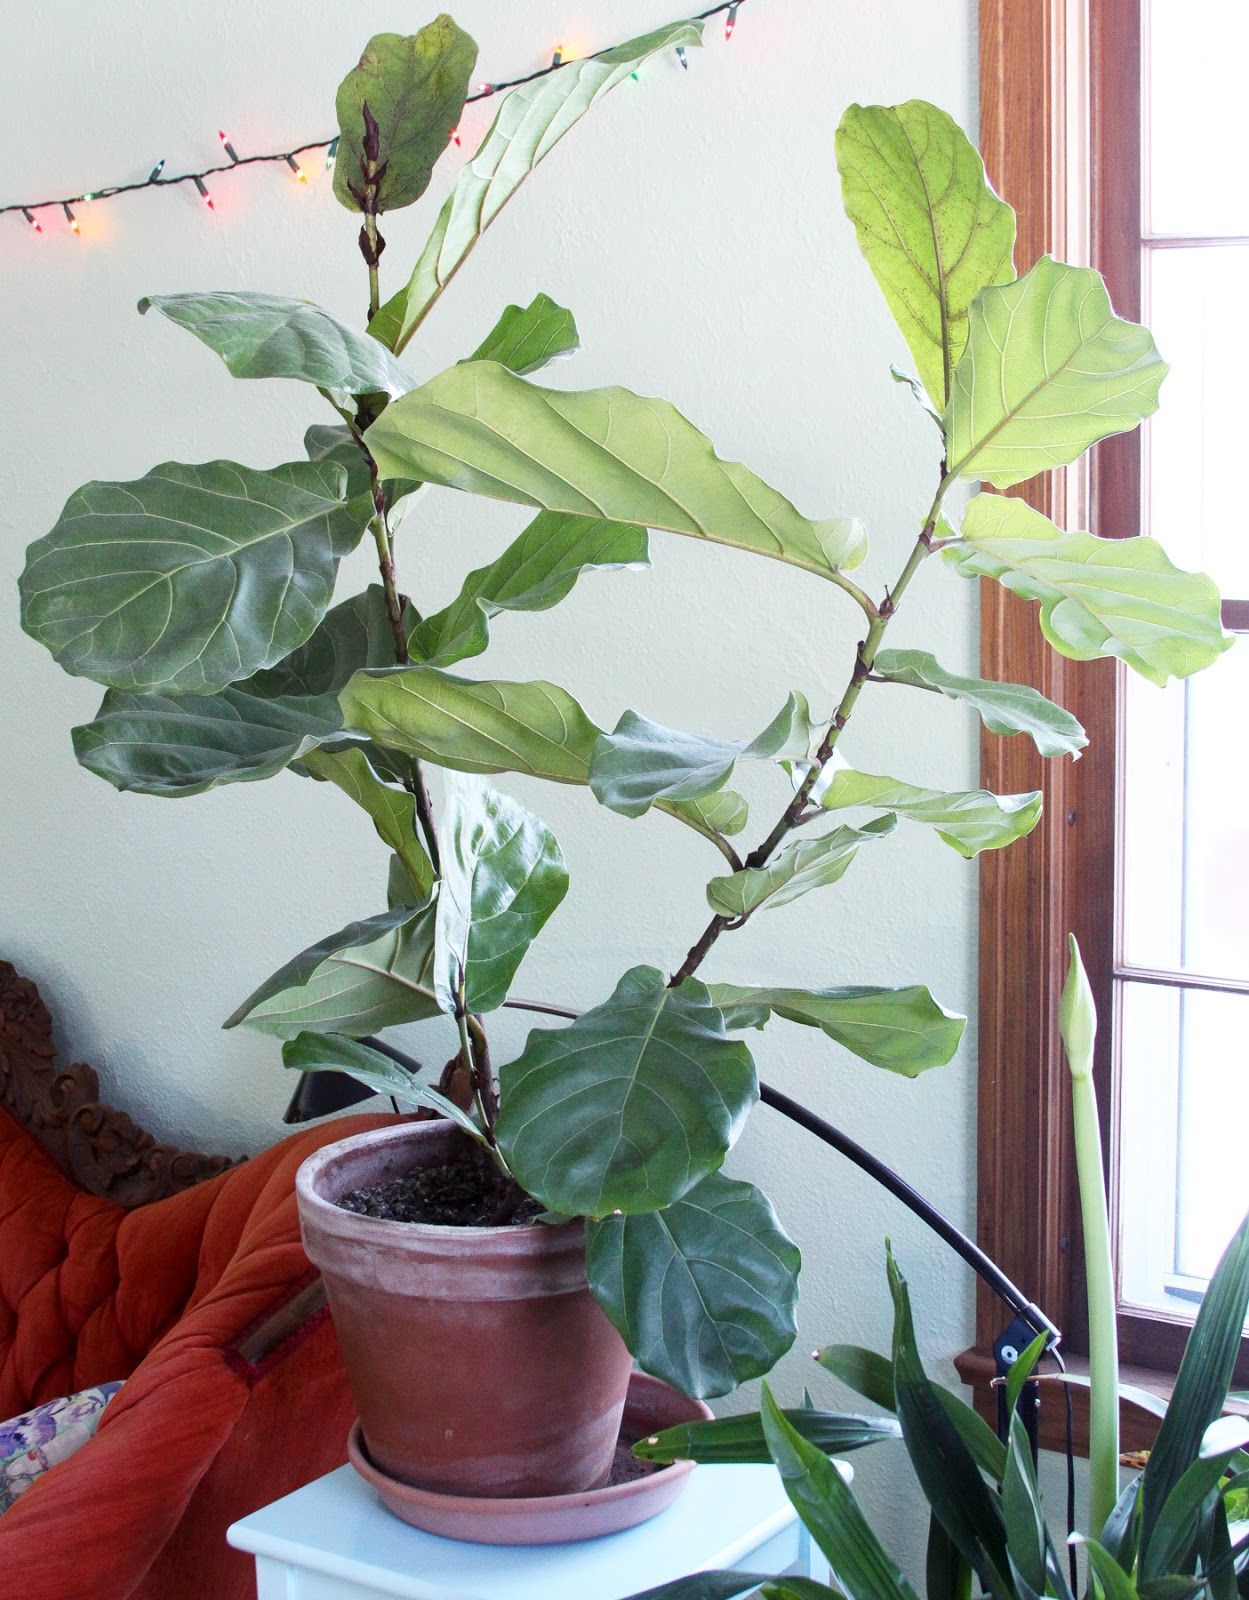 Houseplants Fiddle Leaf Fig Amaryllis Orchids Anne Butera My Giant Strawberry